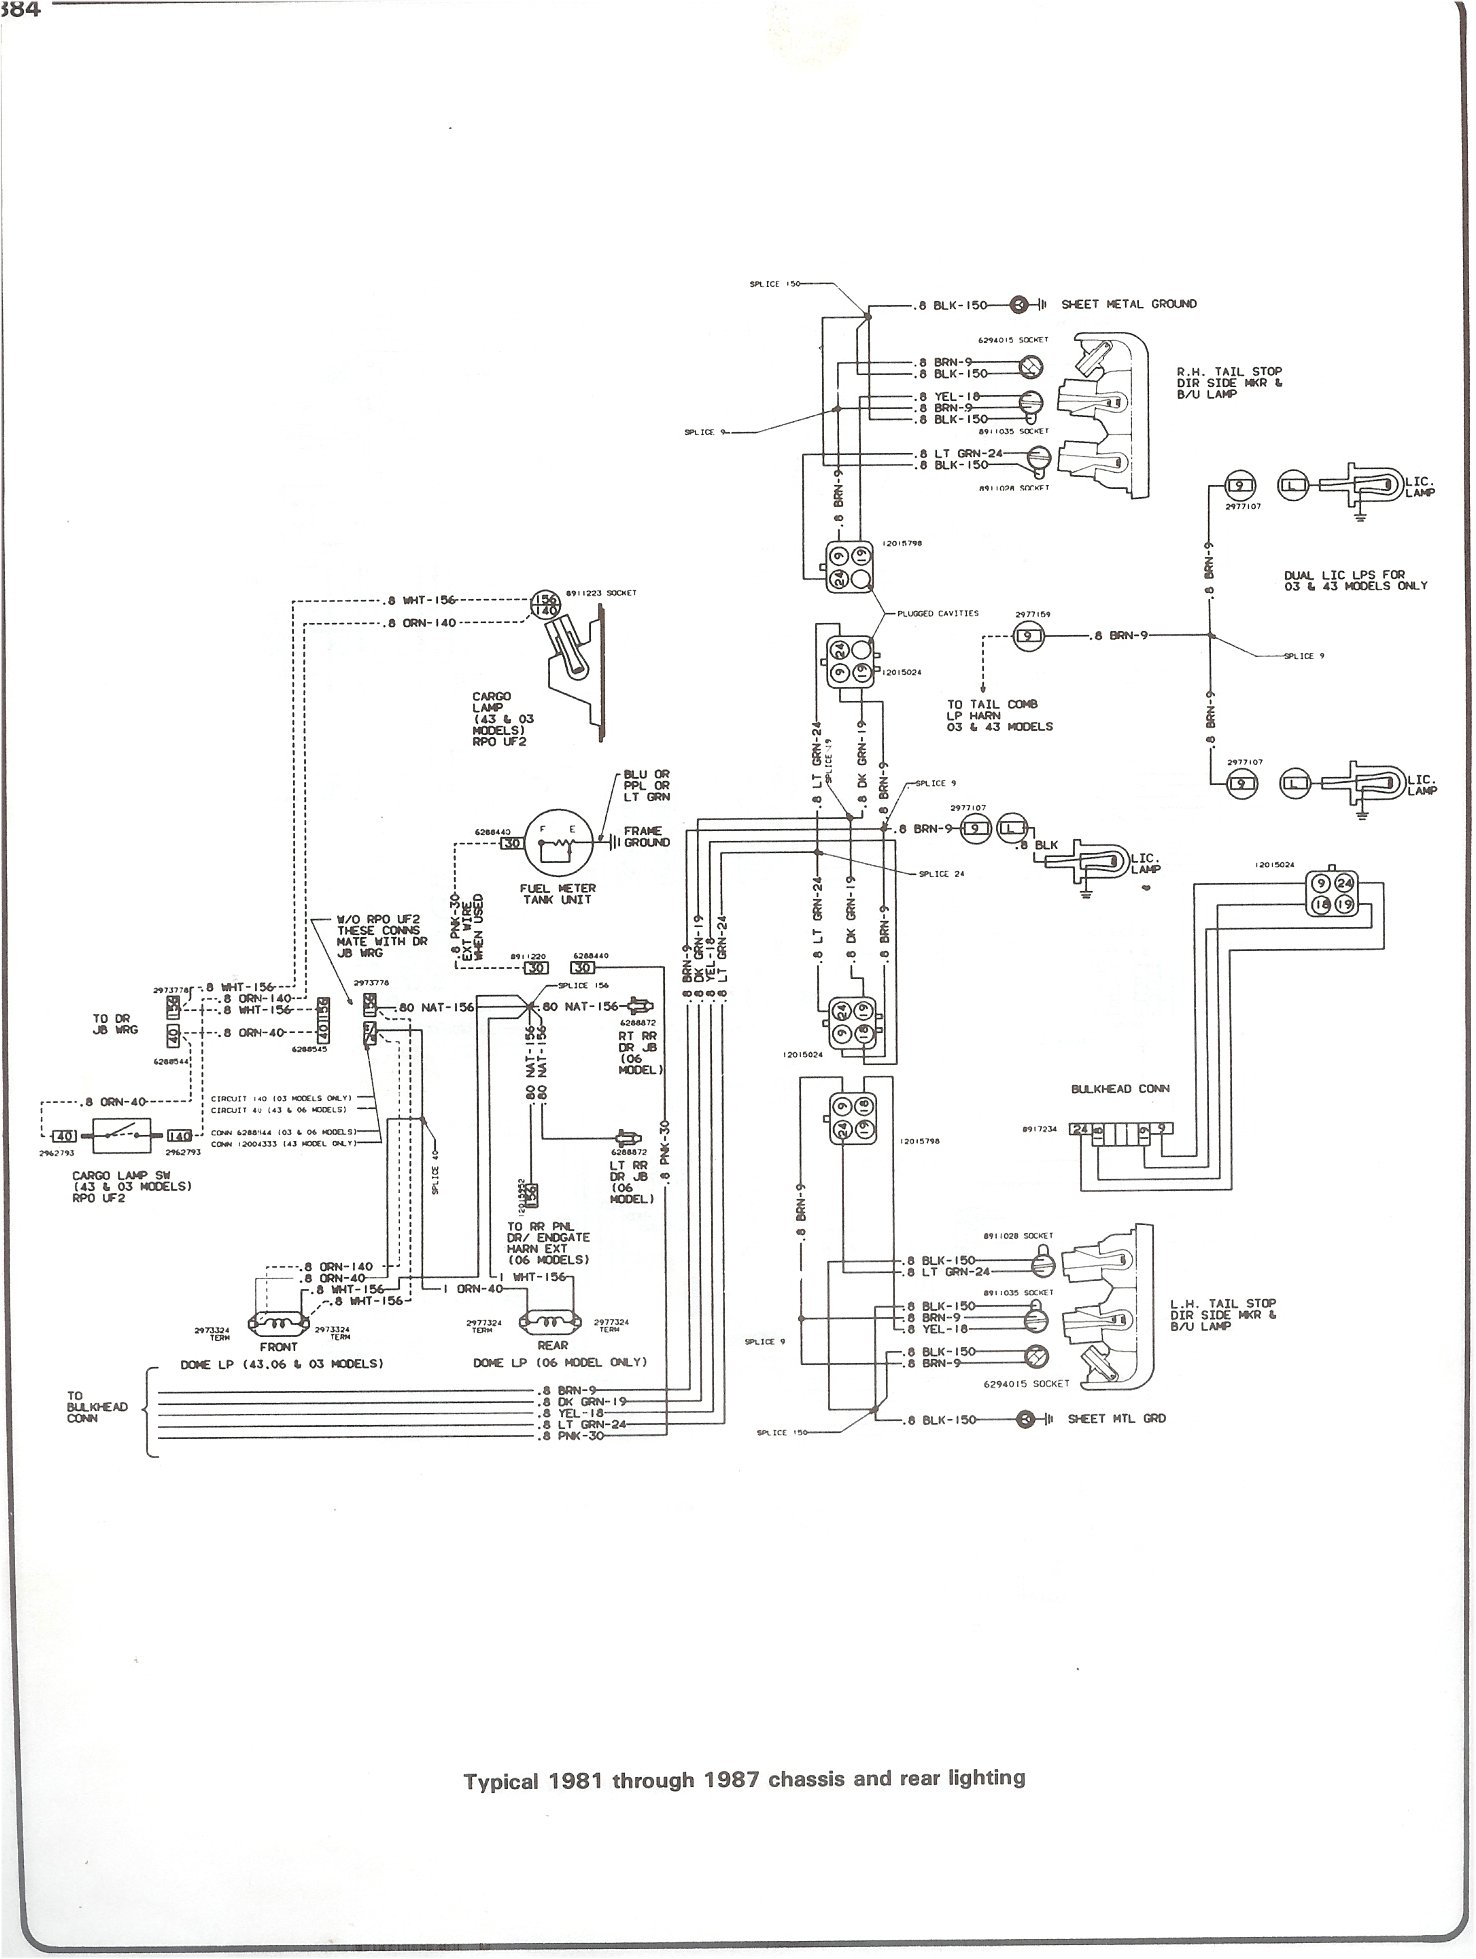 complete 73 87 wiring diagrams rh forum 73 87chevytrucks com 1990 GMC Suburban Wiring Diagram 93 Chevy Suburban Wiring Diagram